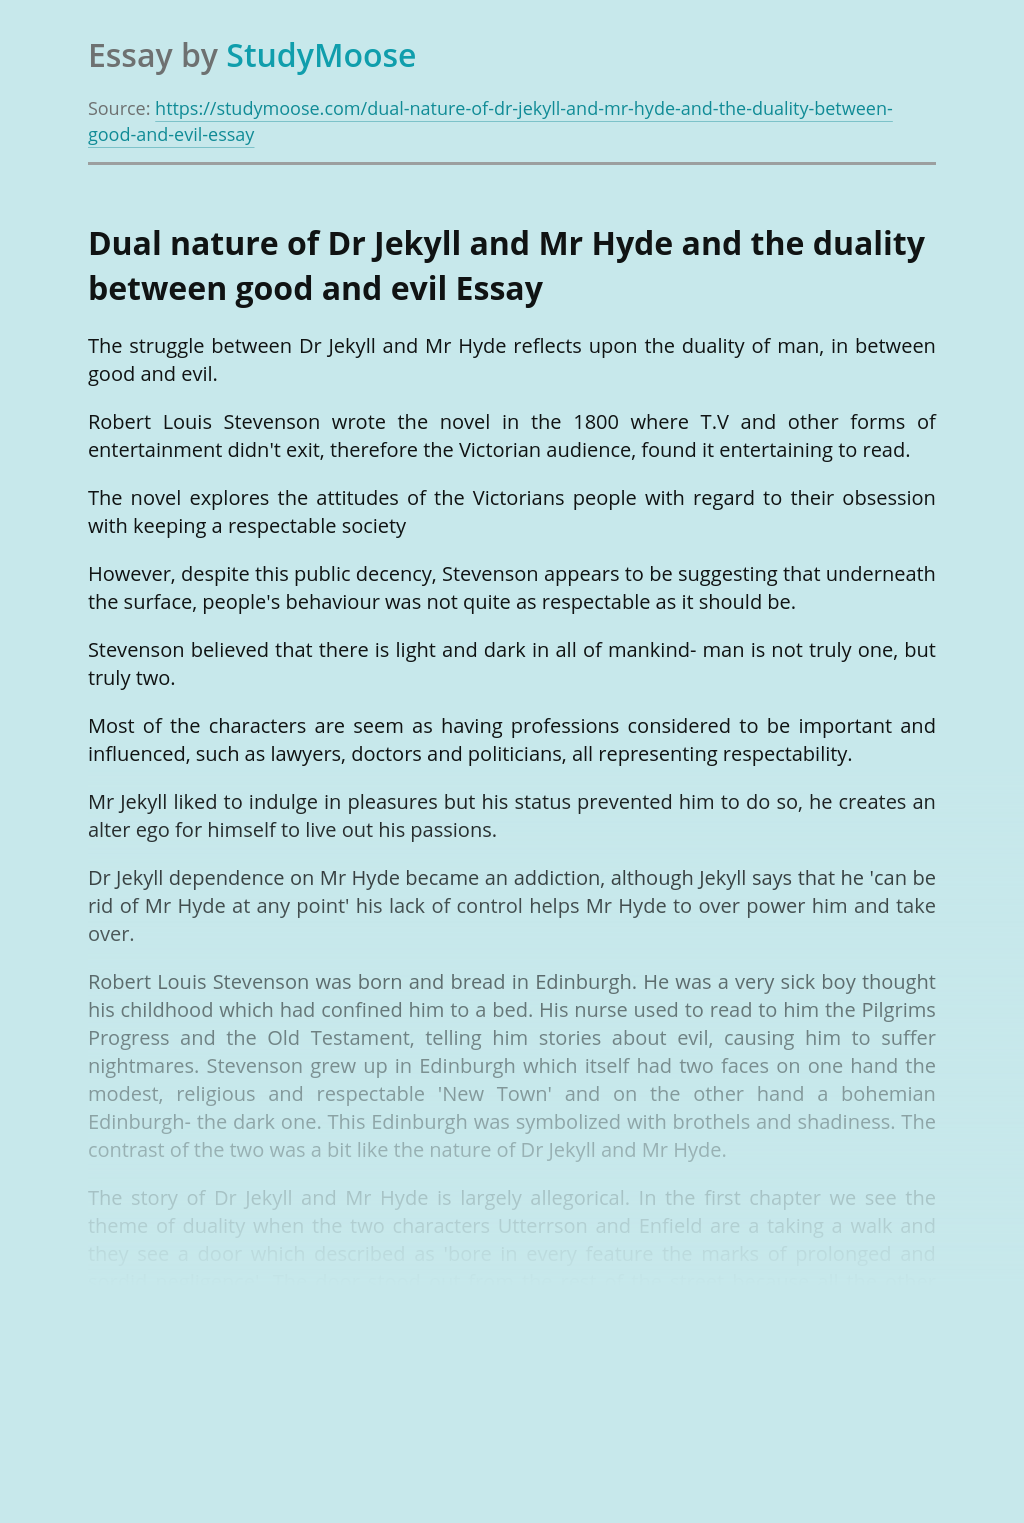 Dual nature of Dr Jekyll and Mr Hyde and the duality between good and evil